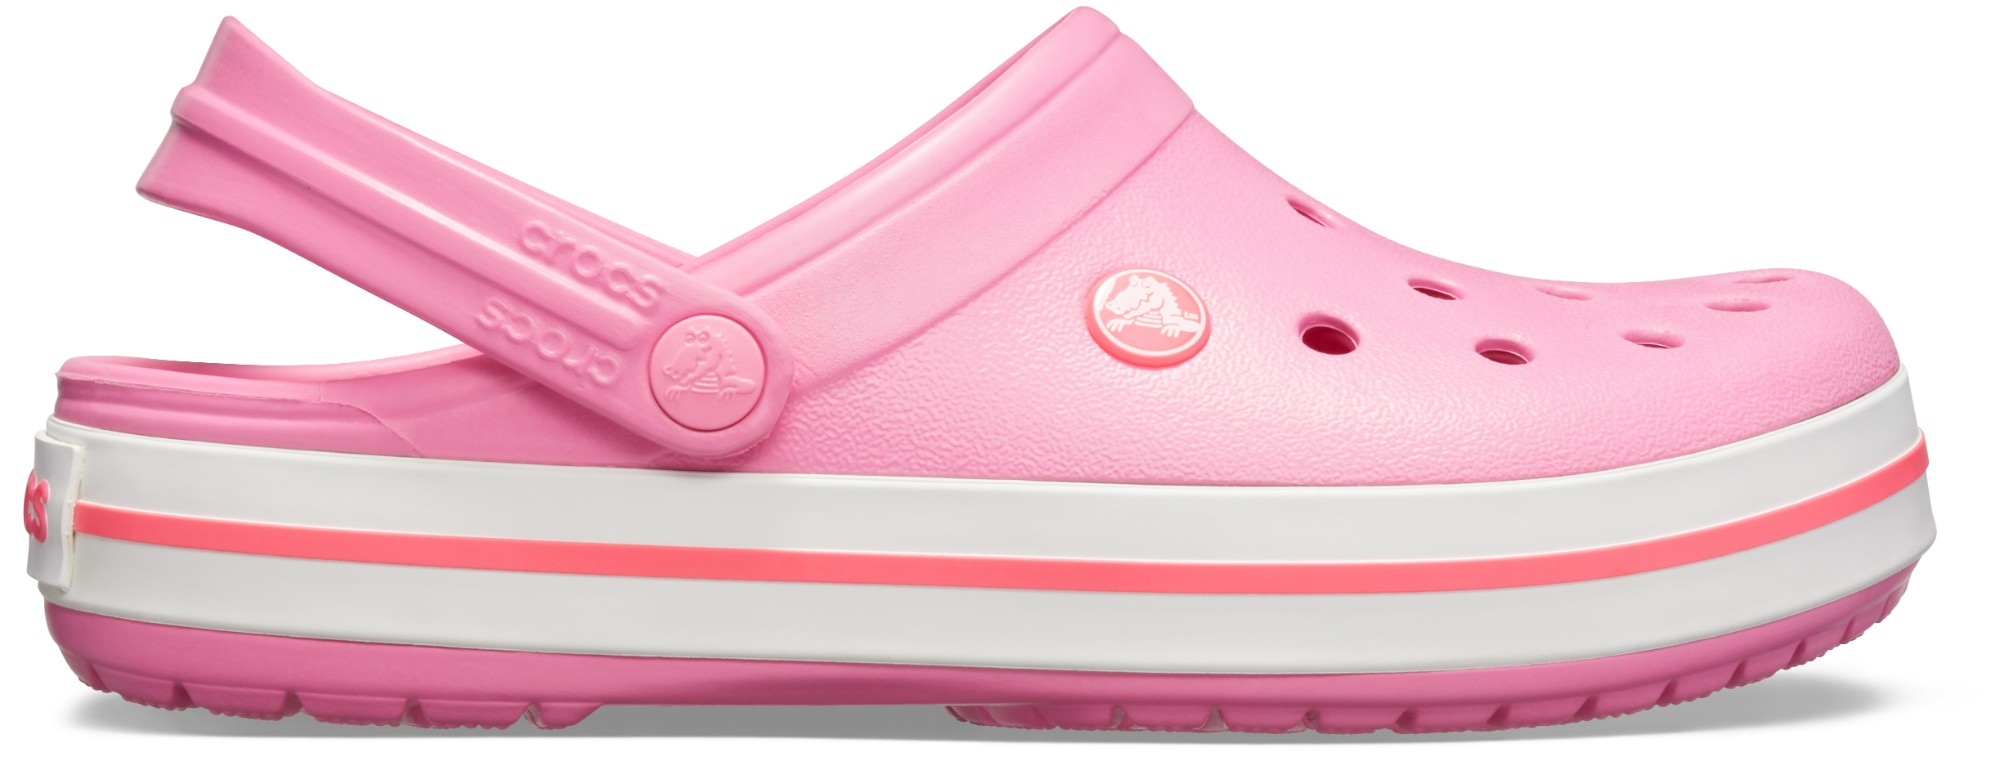 Crocs™ Crocband™ Pink Lemonade/White 42,5